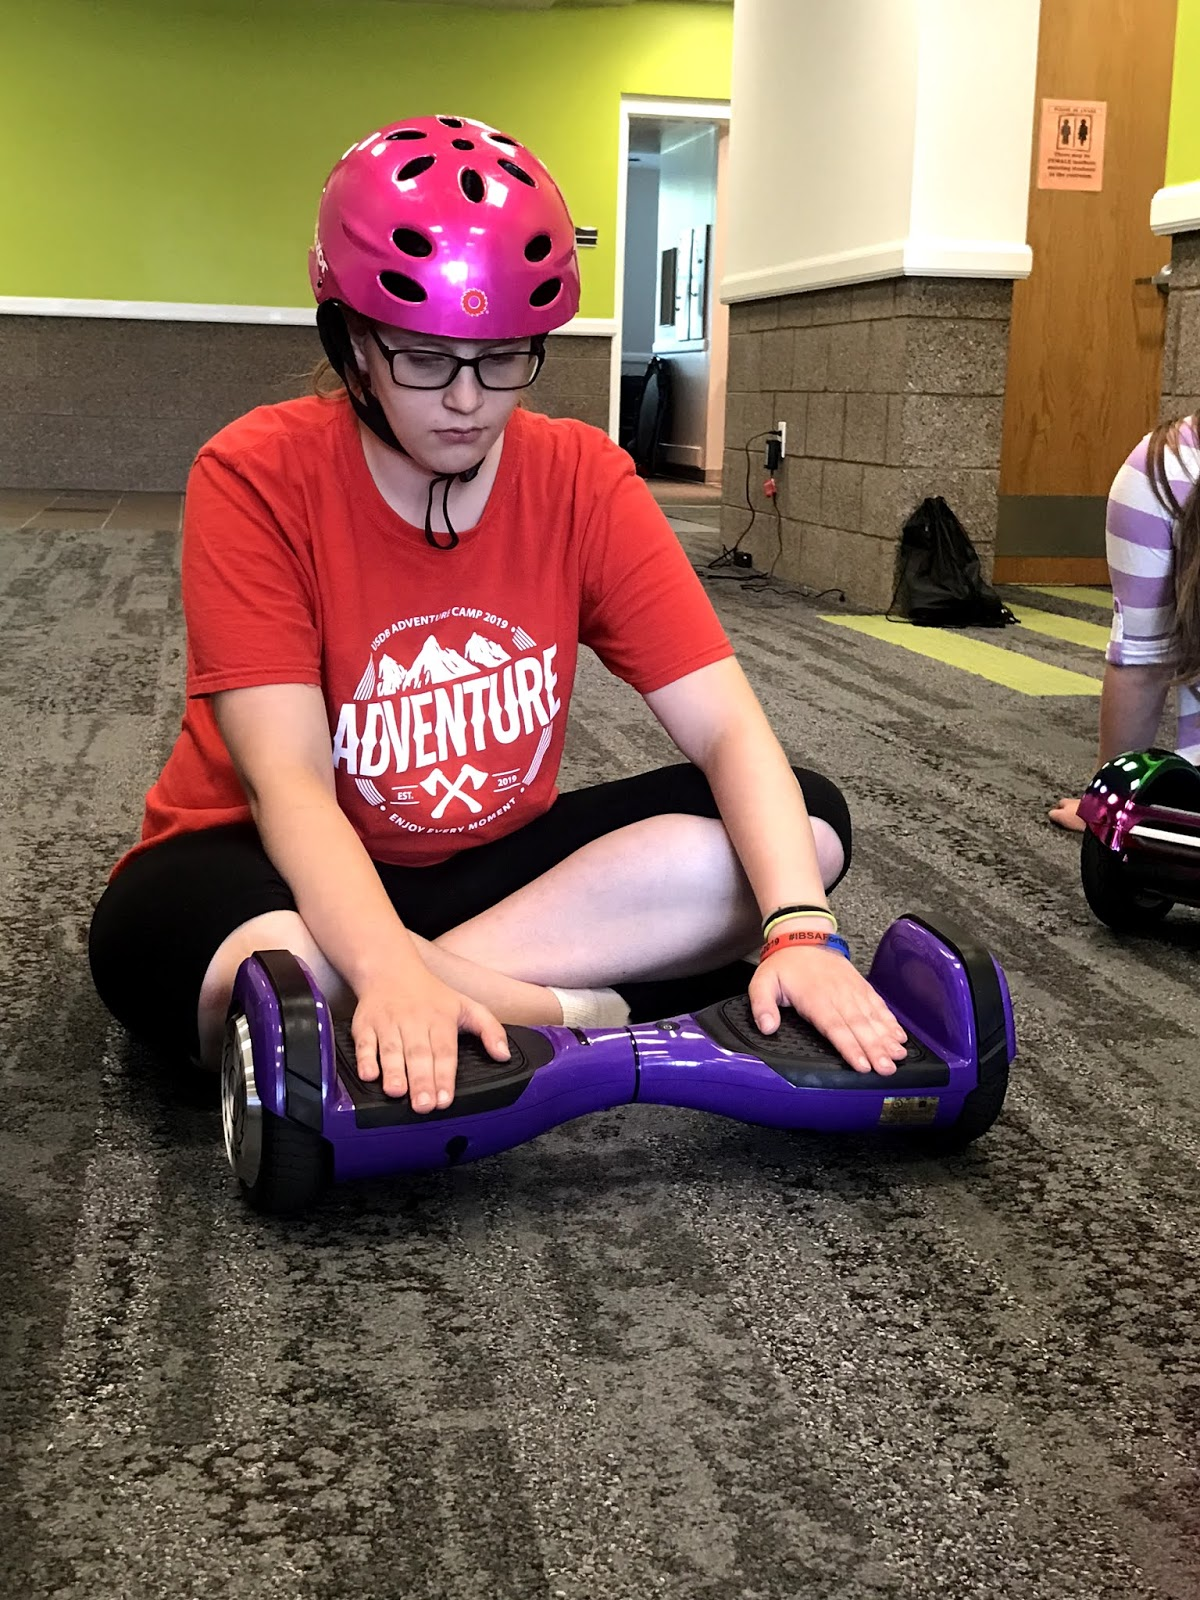 a female student sits on the ground and checks out the hoverboard